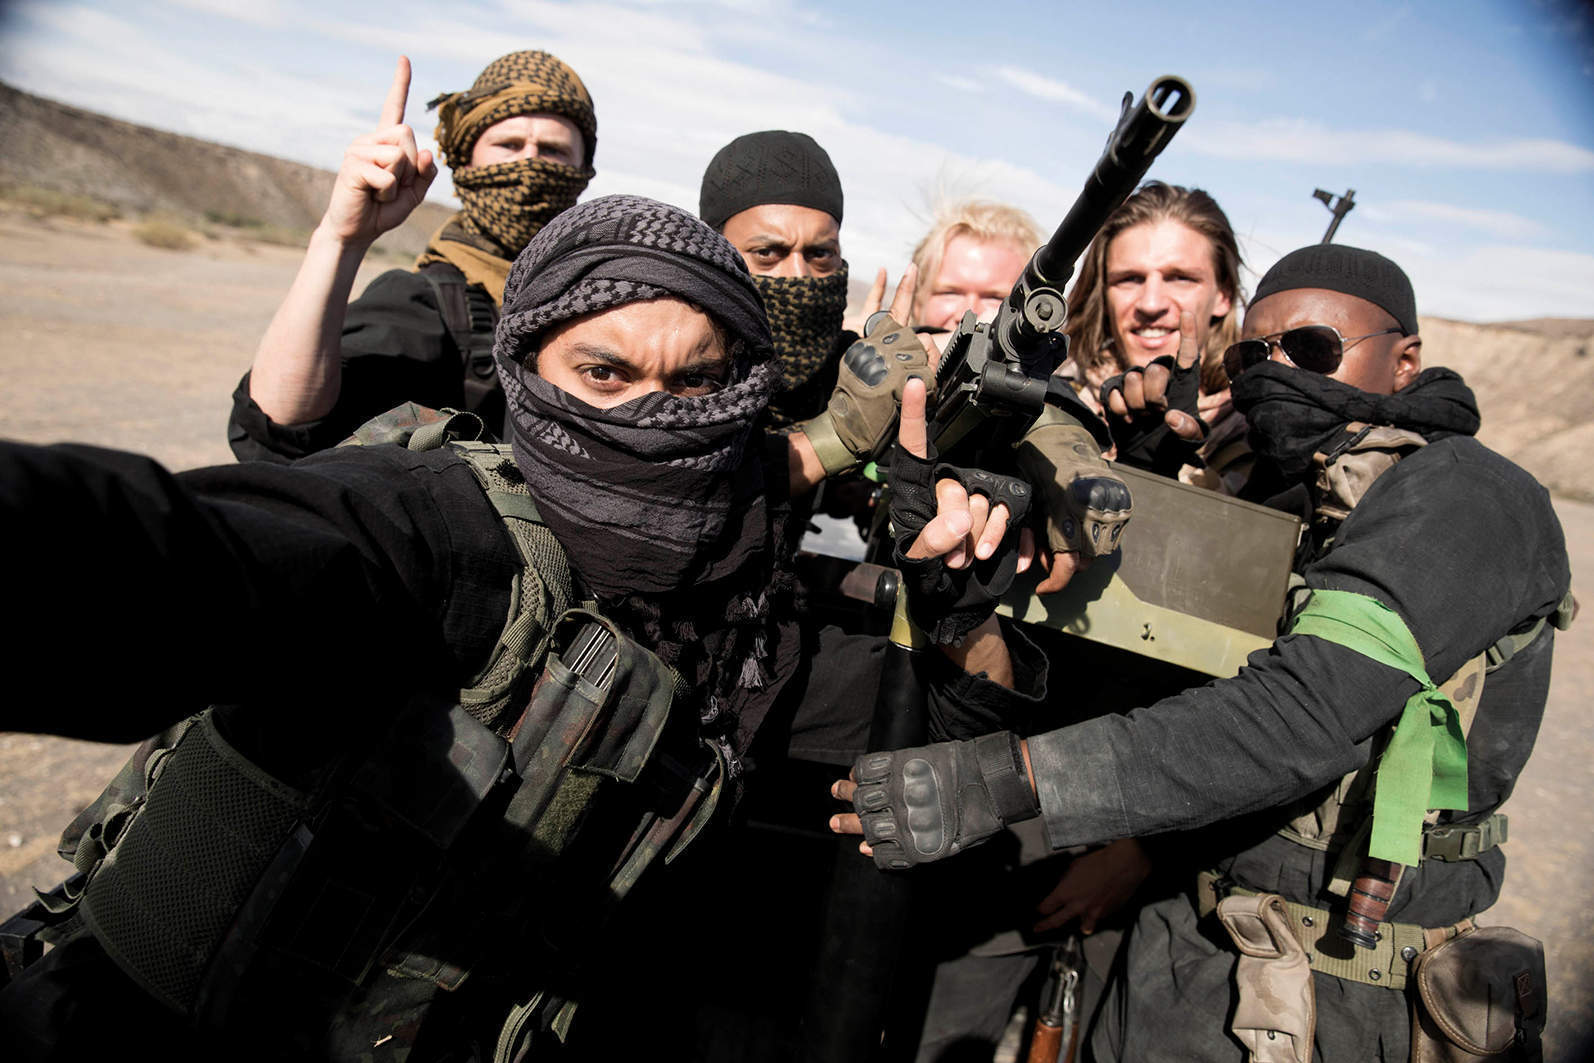 Isis drama The State shows the sheer stupidity of these young fanatics